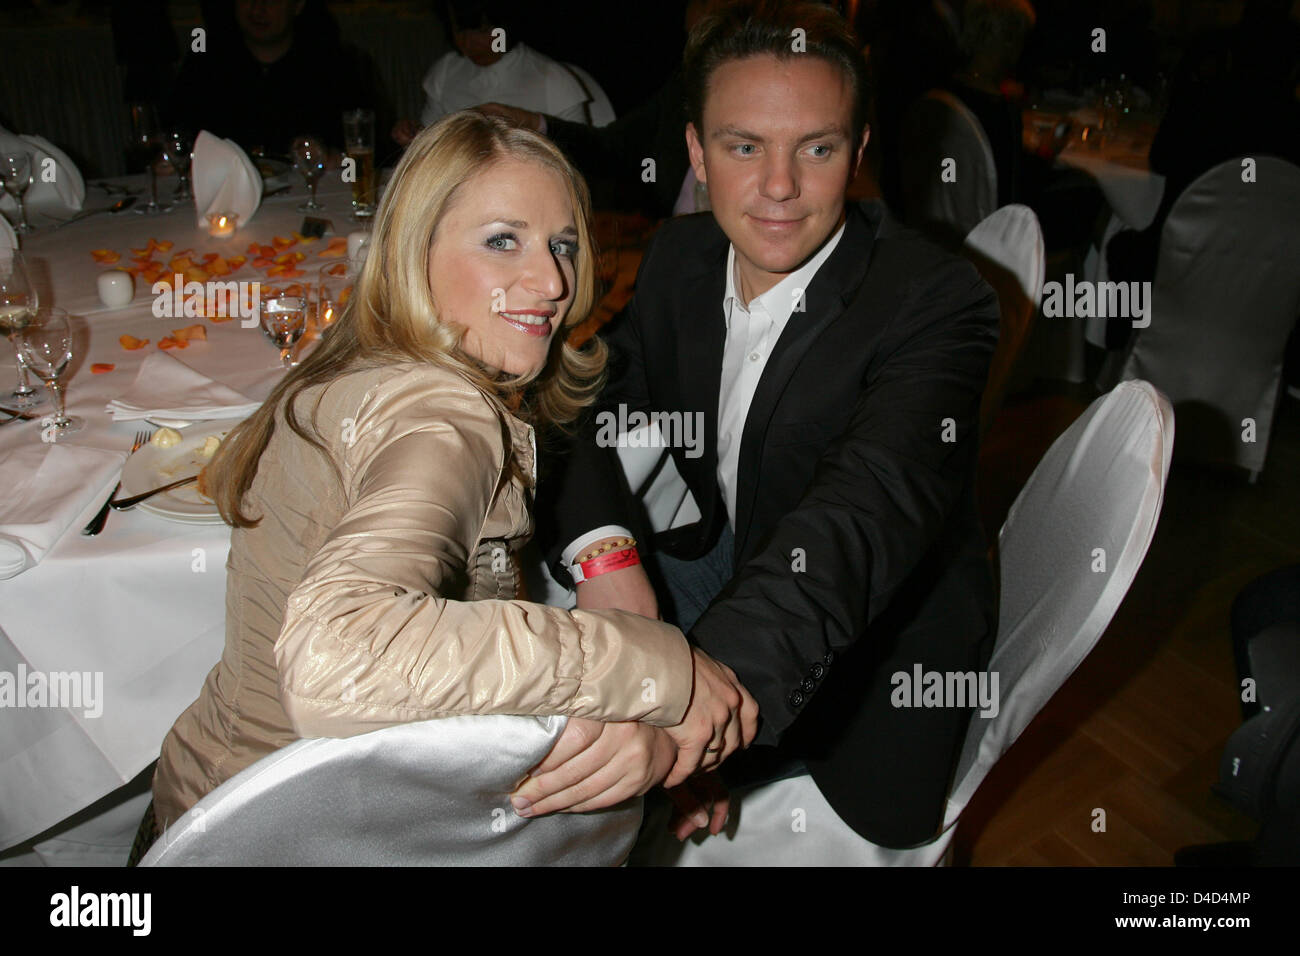 Singer couple Stefanie Hertel and Stefan Mross are pictured at the after show party of live tv show 'Willkommen - Stock Image